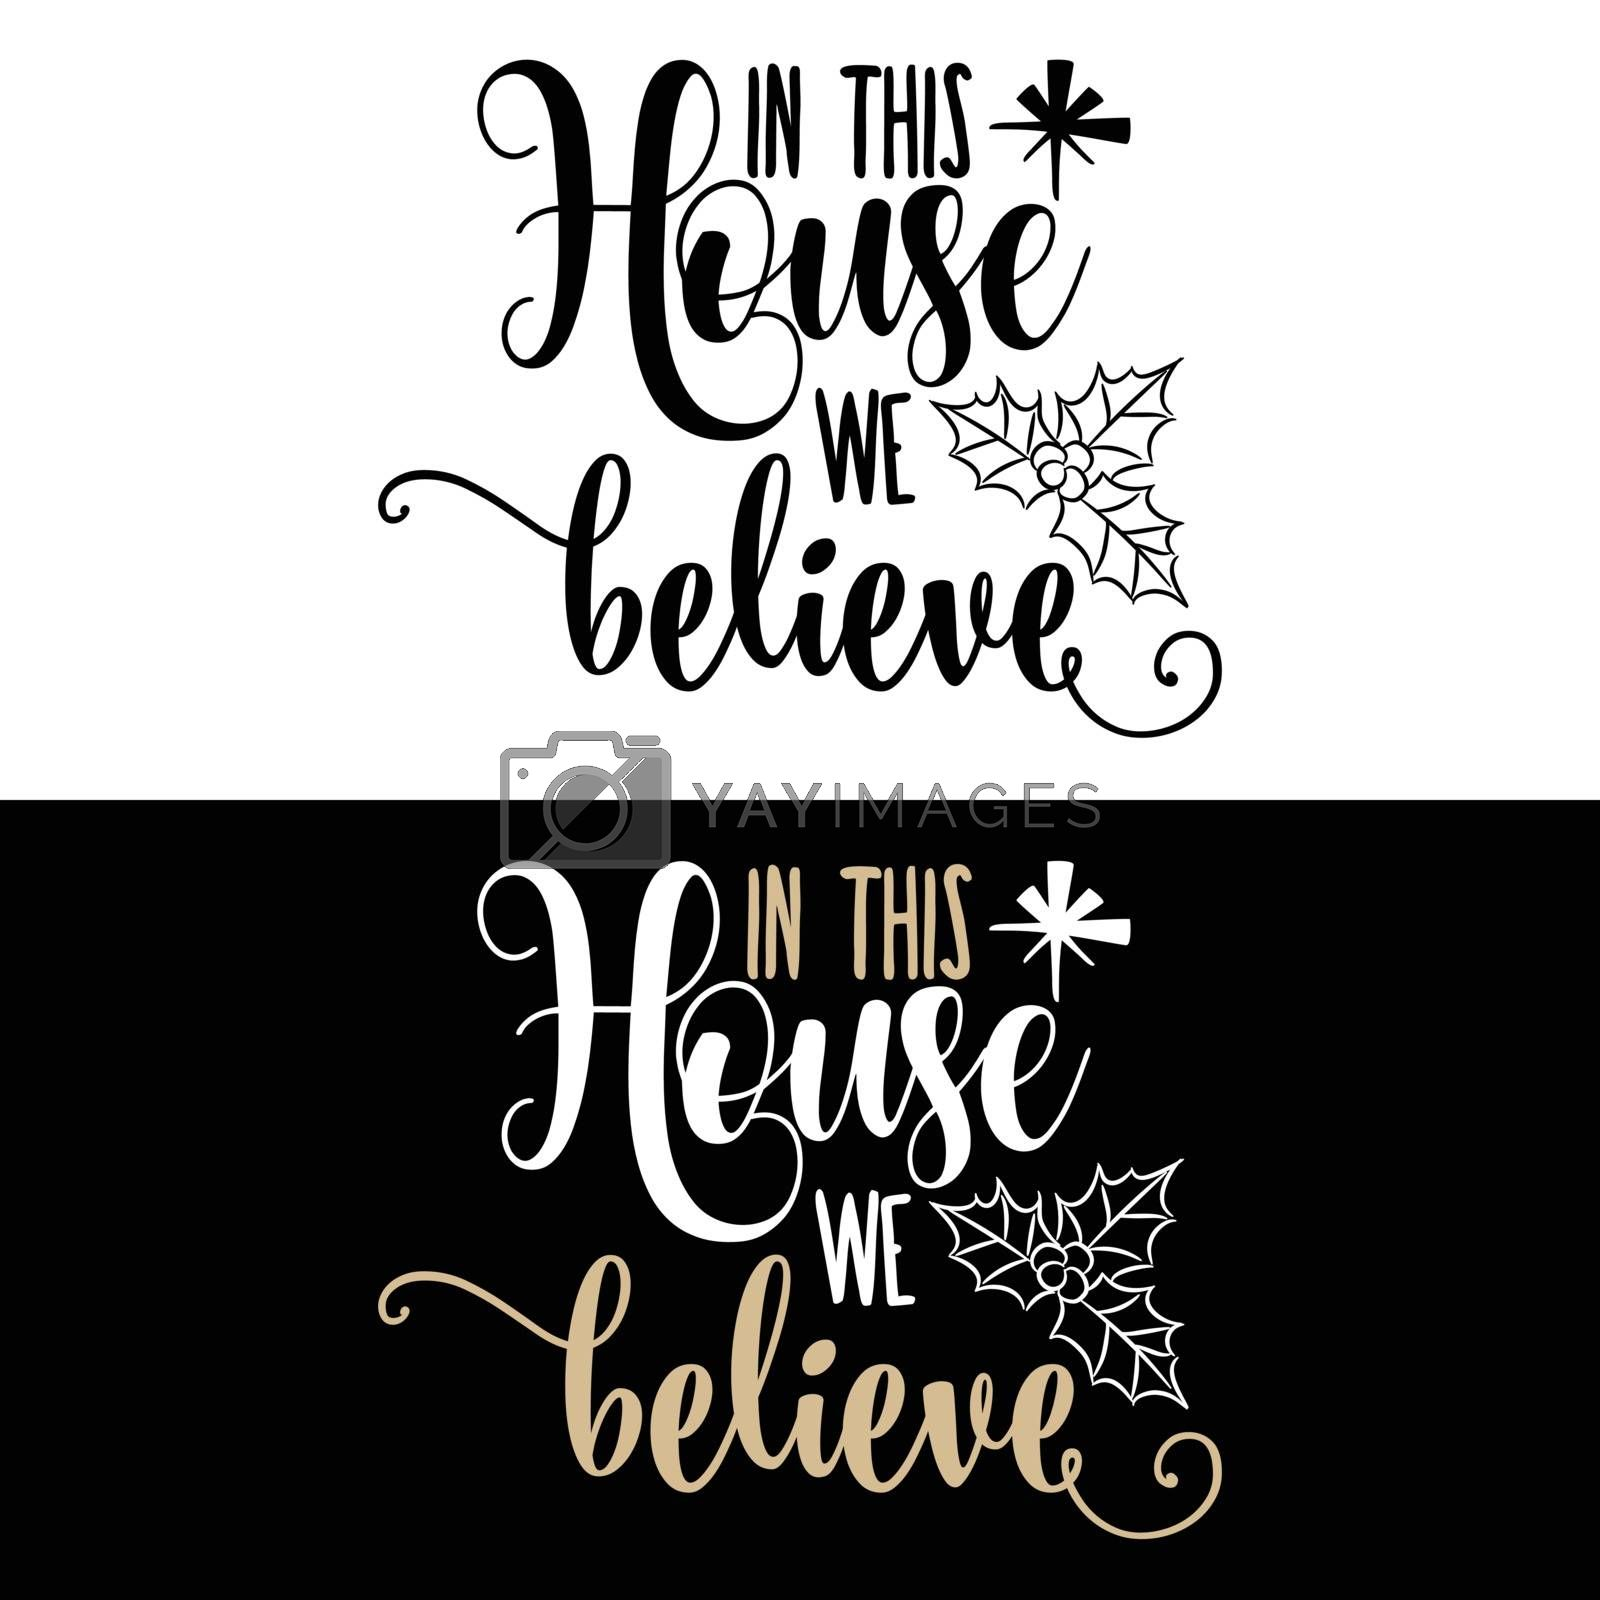 Christmas quote. In this house we believe . Christmas poster, banner, Christmas card